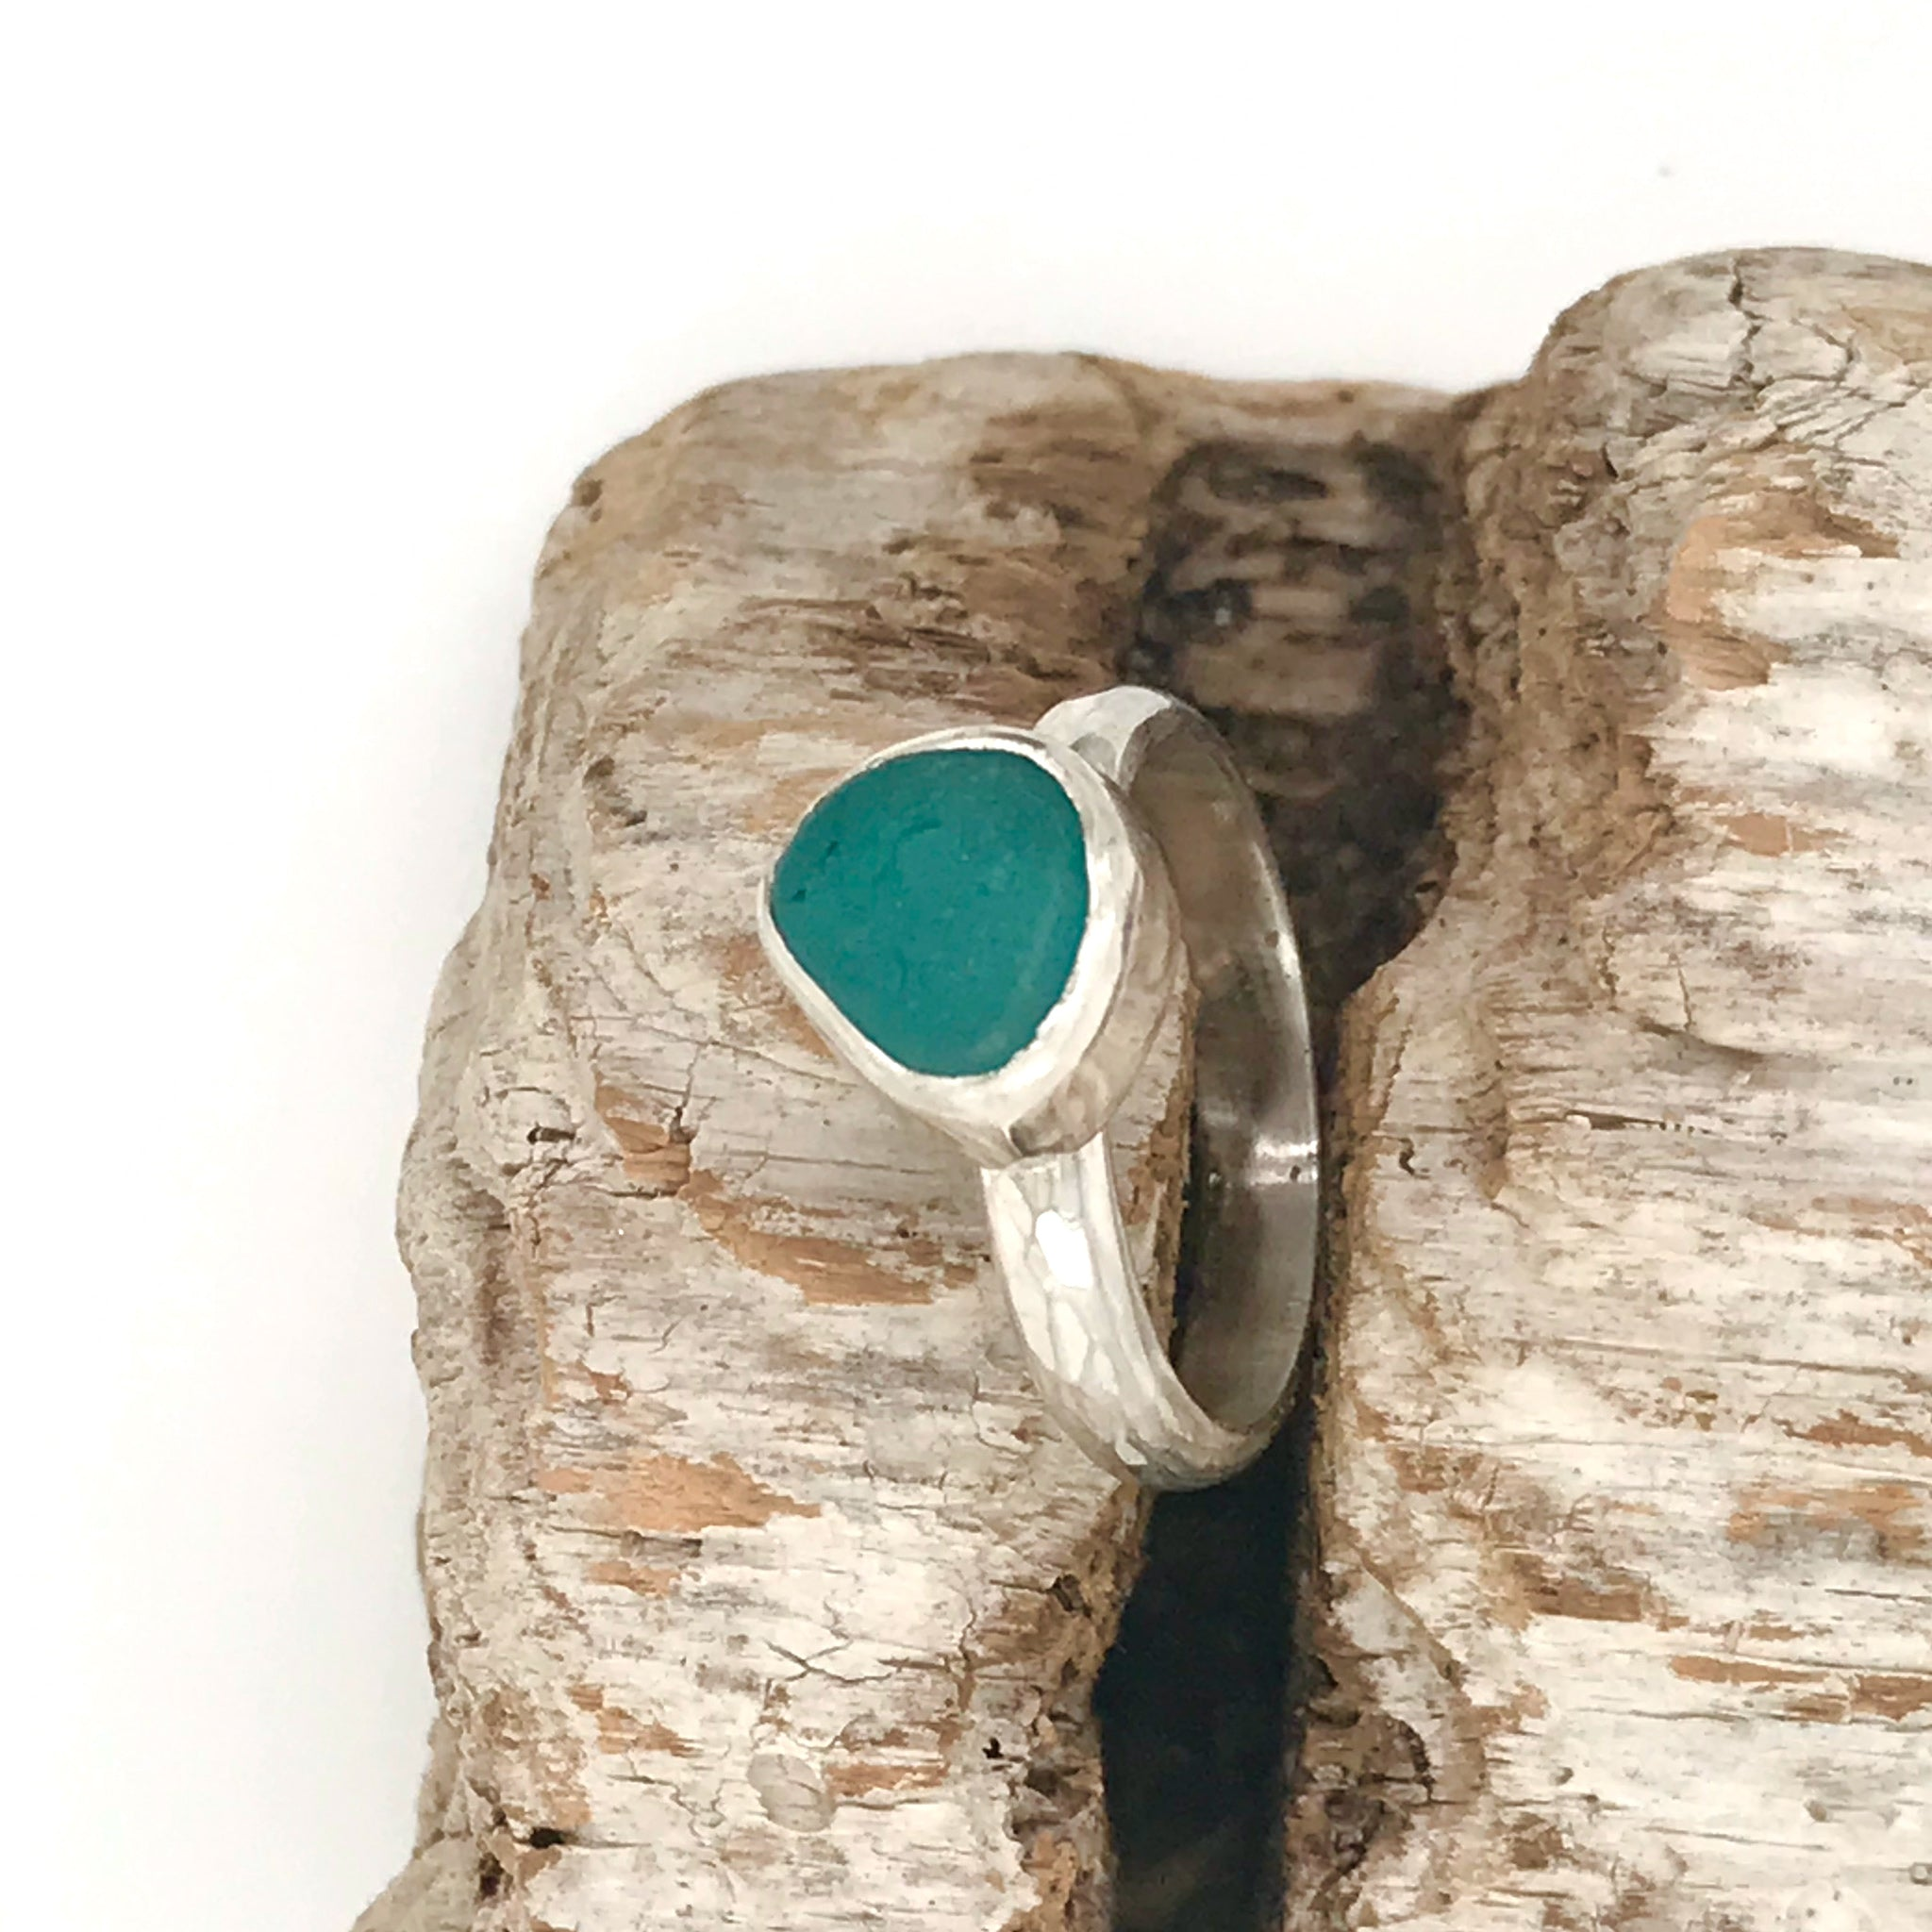 icelandic teal seaglass pinky ring